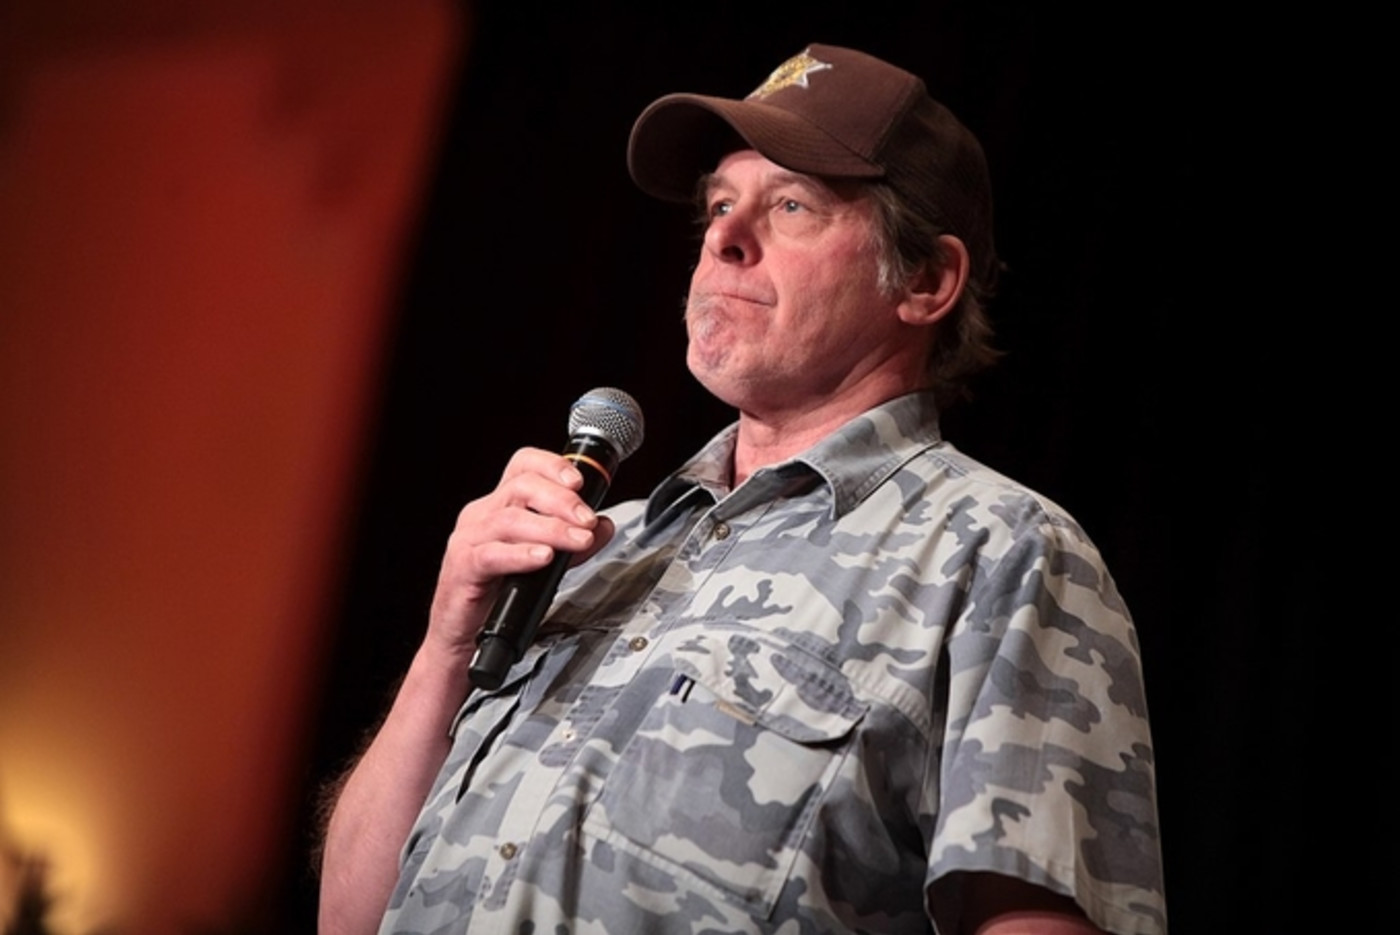 Ted Nugent at the 2015 Maricopa County Republican Party Lincoln Day